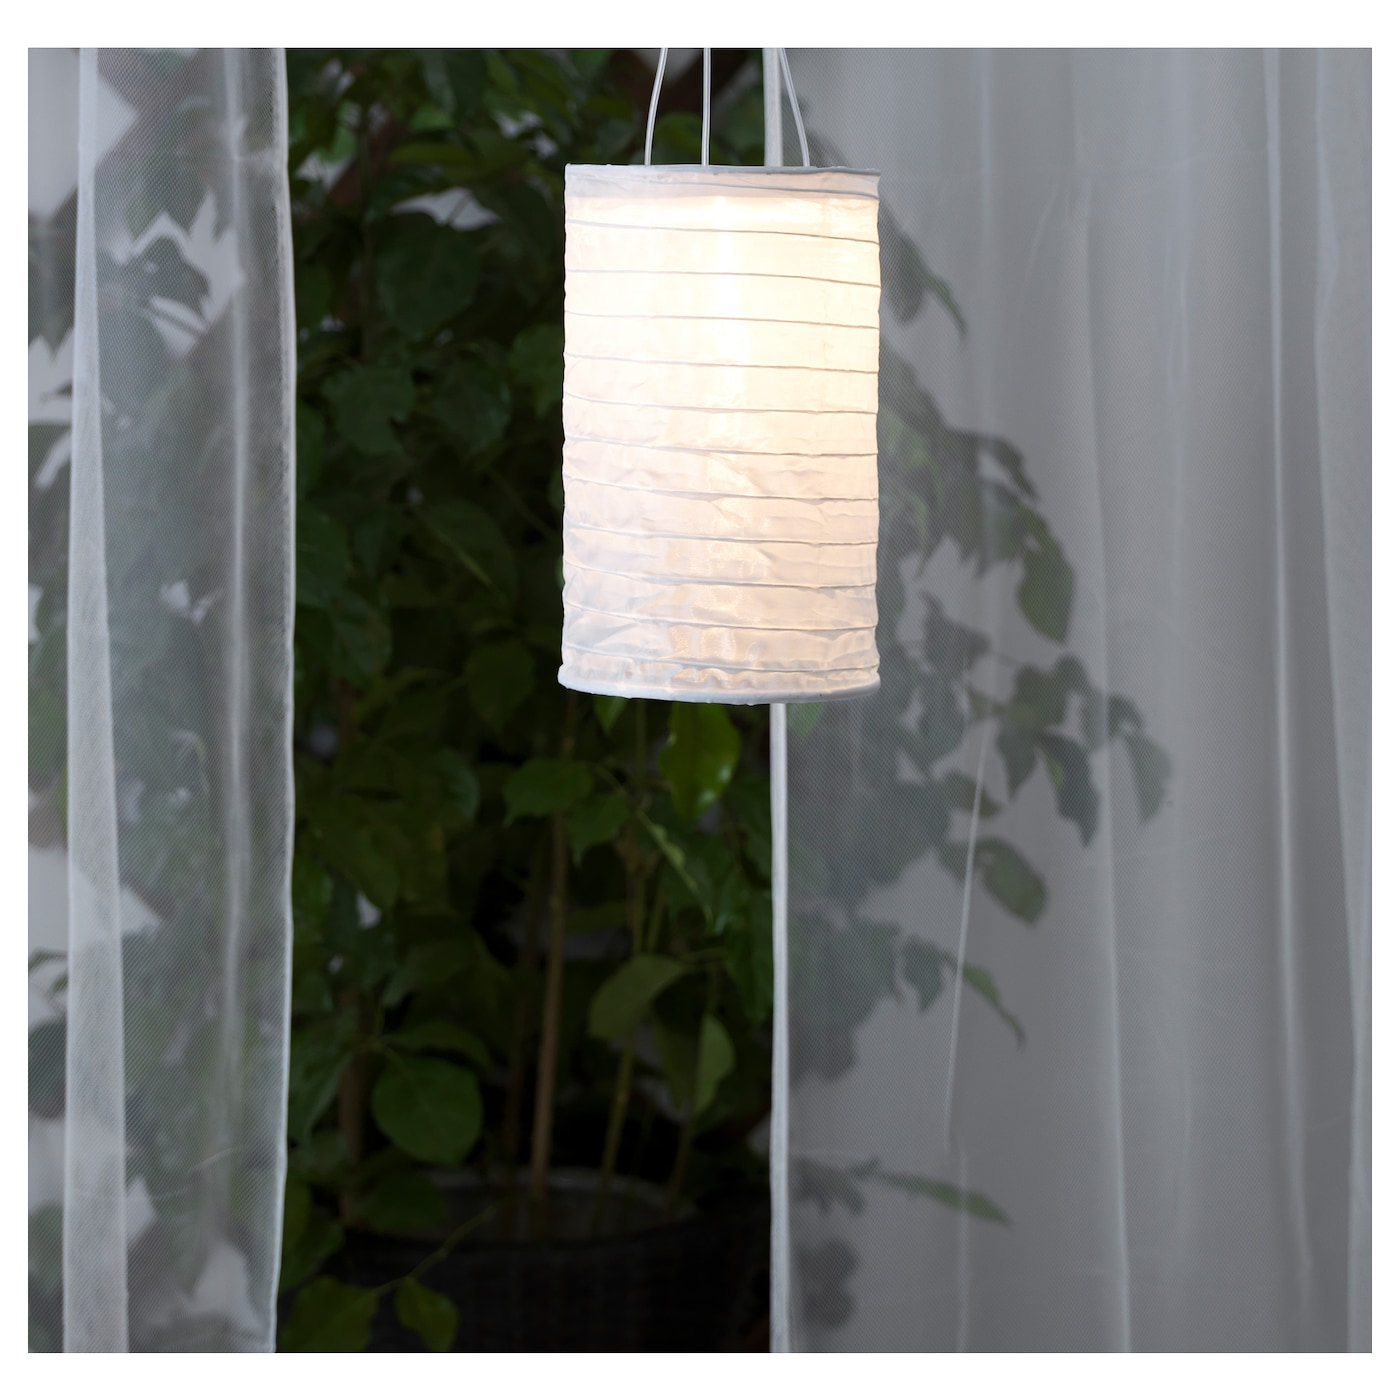 IKEA SOLVINDEN solar-powered pendant lamp Easy to use because no cables or plugs are needed.